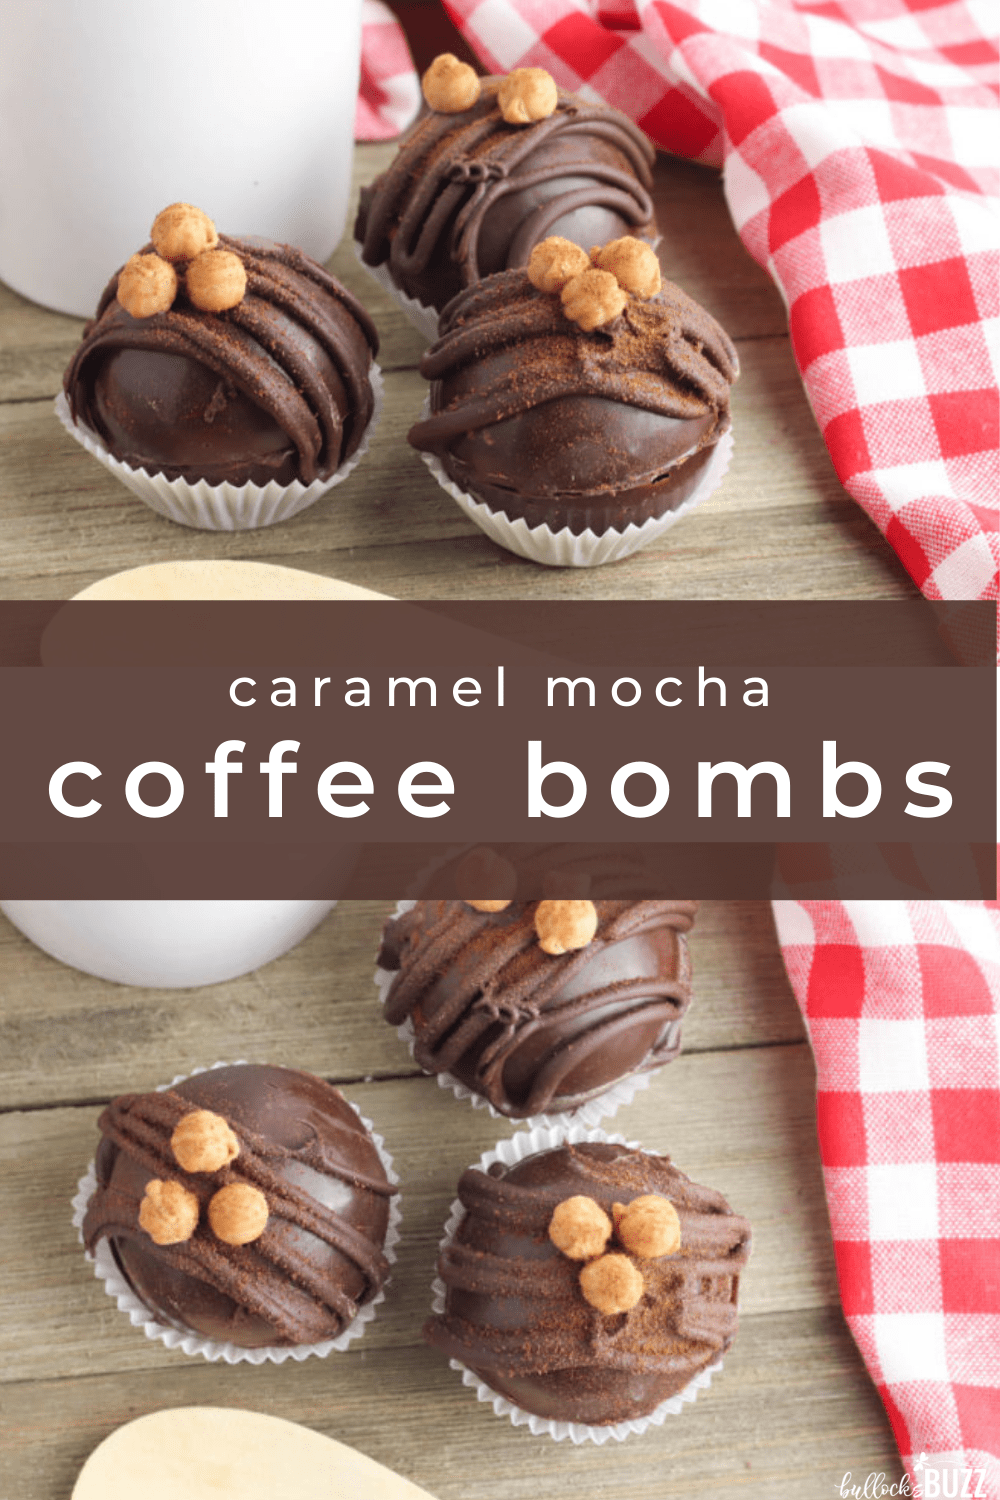 This Caramel Mocha Coffee Bomb recipe is the perfect combination of rich chocolate, flavorful espresso, and buttery caramel. Once these tasty little treats 'explode', you'll have the best cup of caramel mocha coffee ever! #coffeebomb #espressobomb #recipes #caramelmocha #coffee